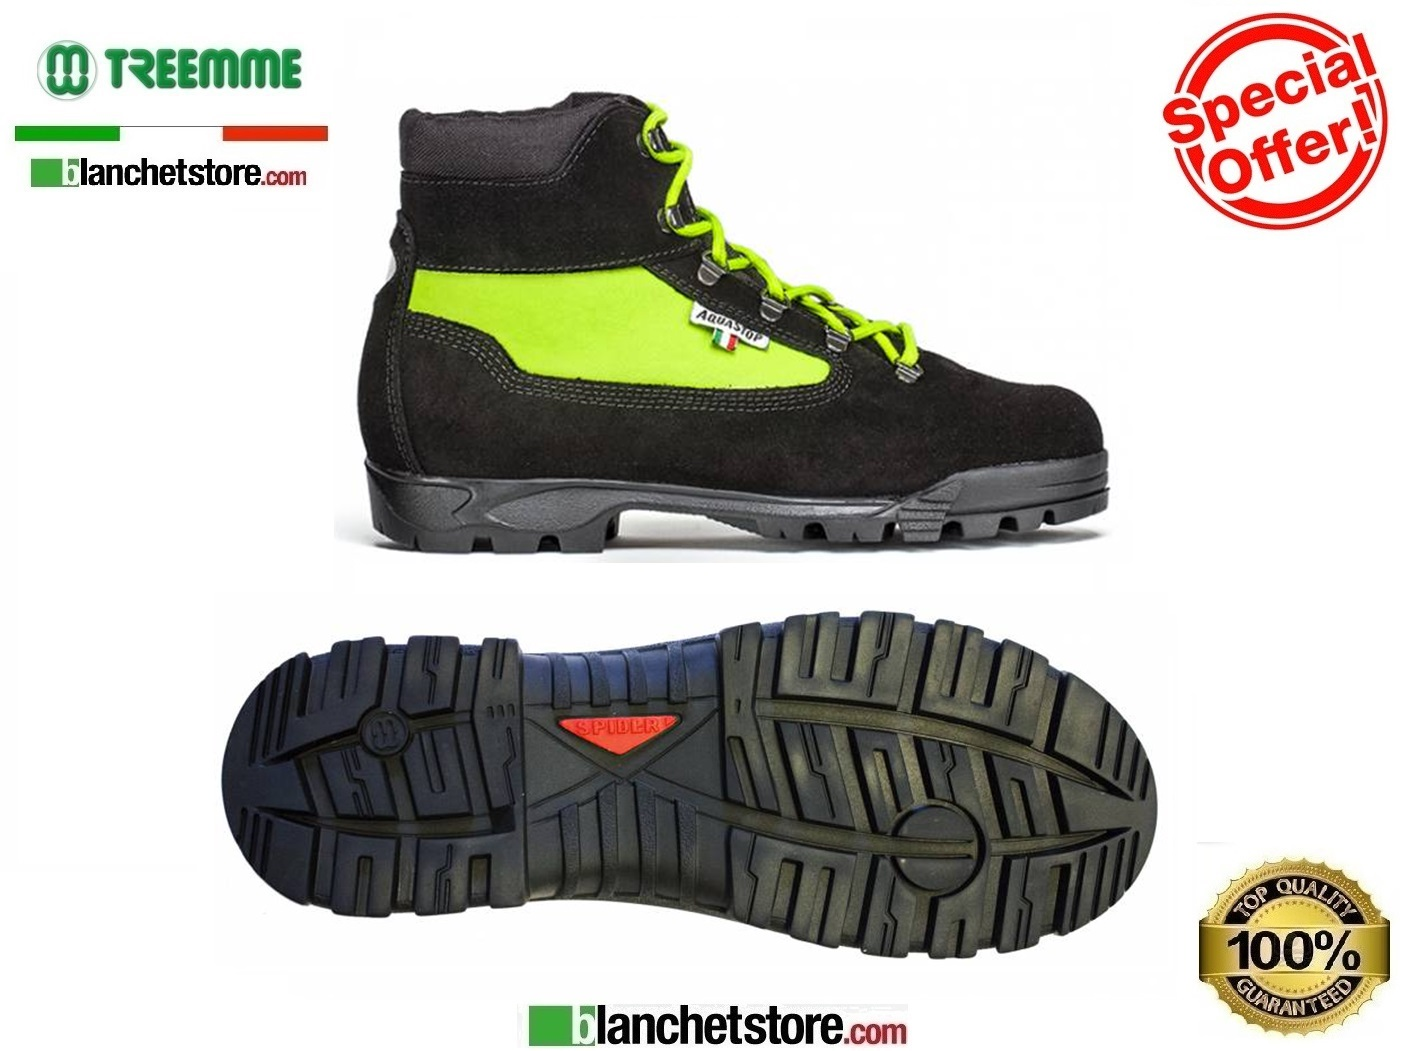 Scarponcino Trekking in crosta-cordura 9518 N.47 Acquastop Yello